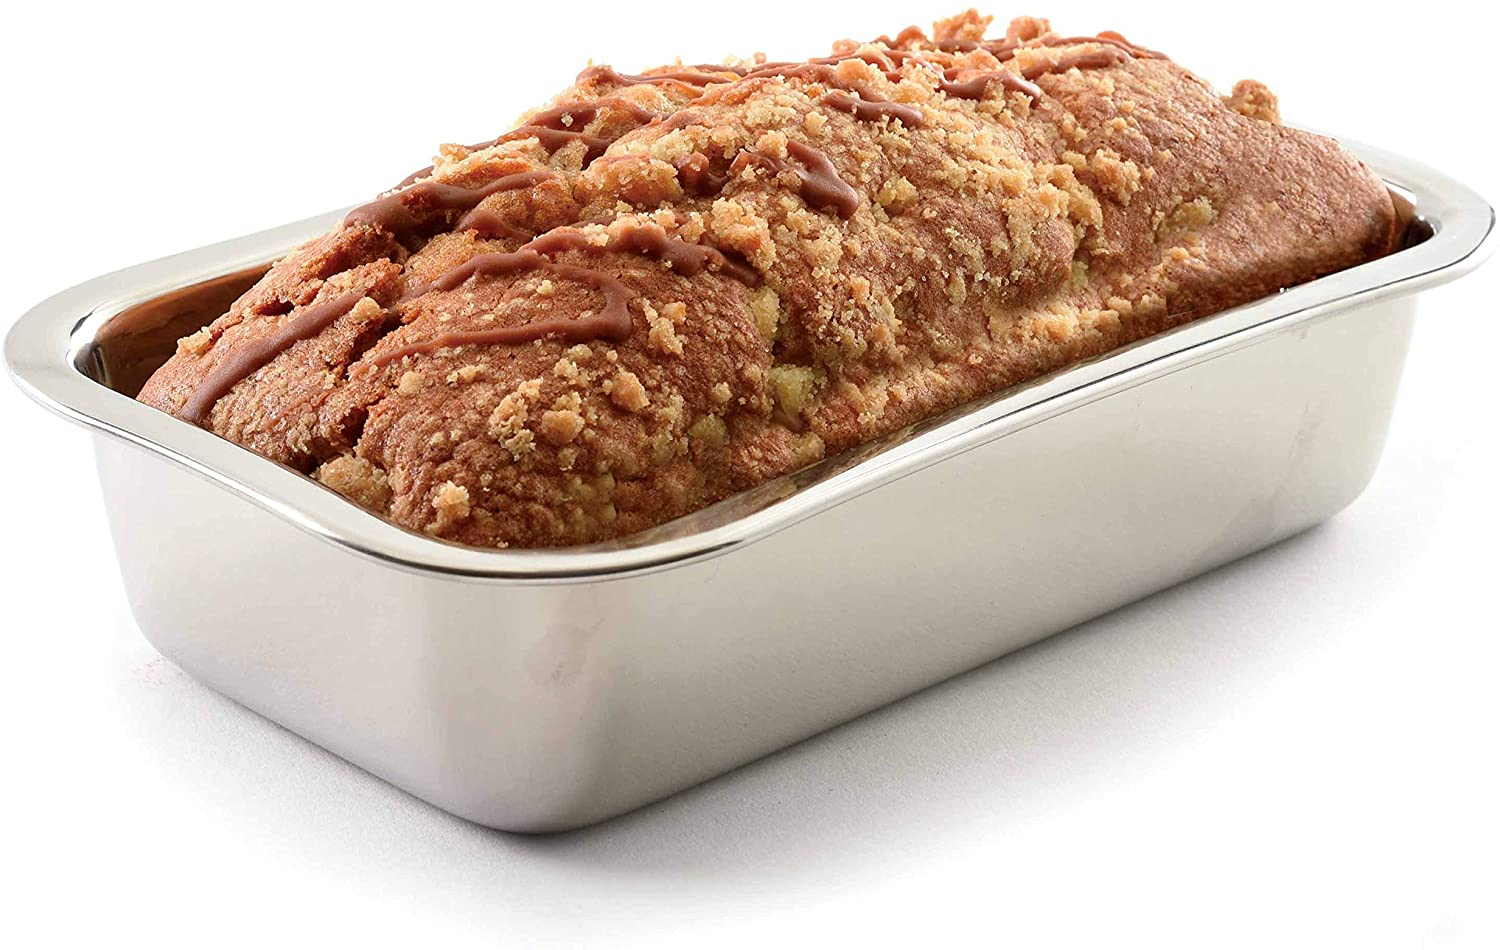 My favorite stainless steel loaf pans that bake out perfect smaller loaves for giving.